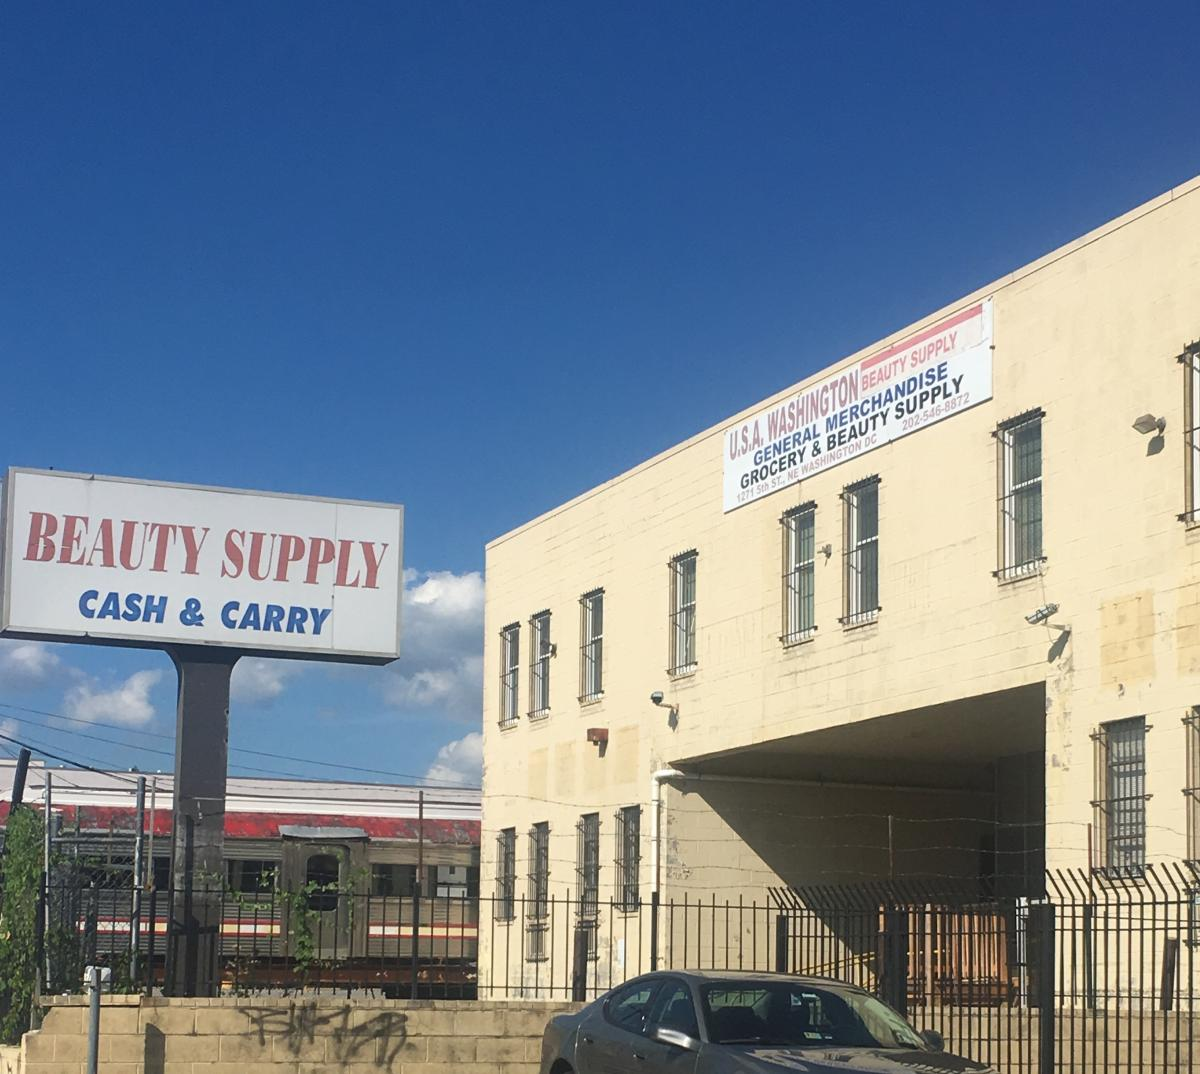 The outside of the beauty supply warehouse